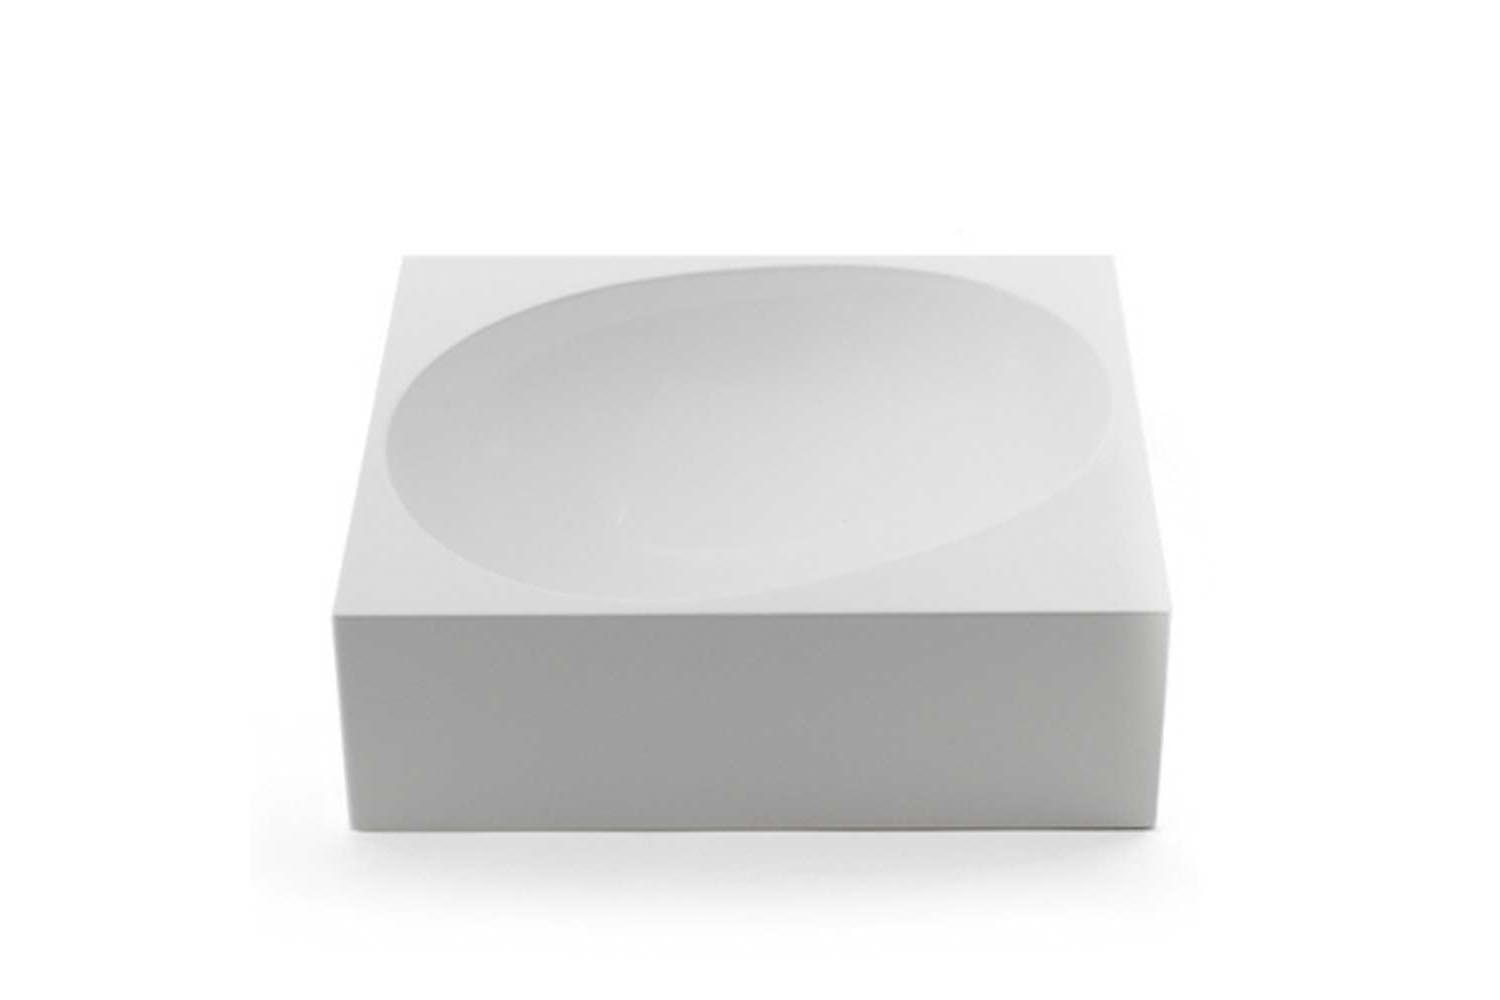 Outside Tray by Naoto Fukasawa for B&B Italia